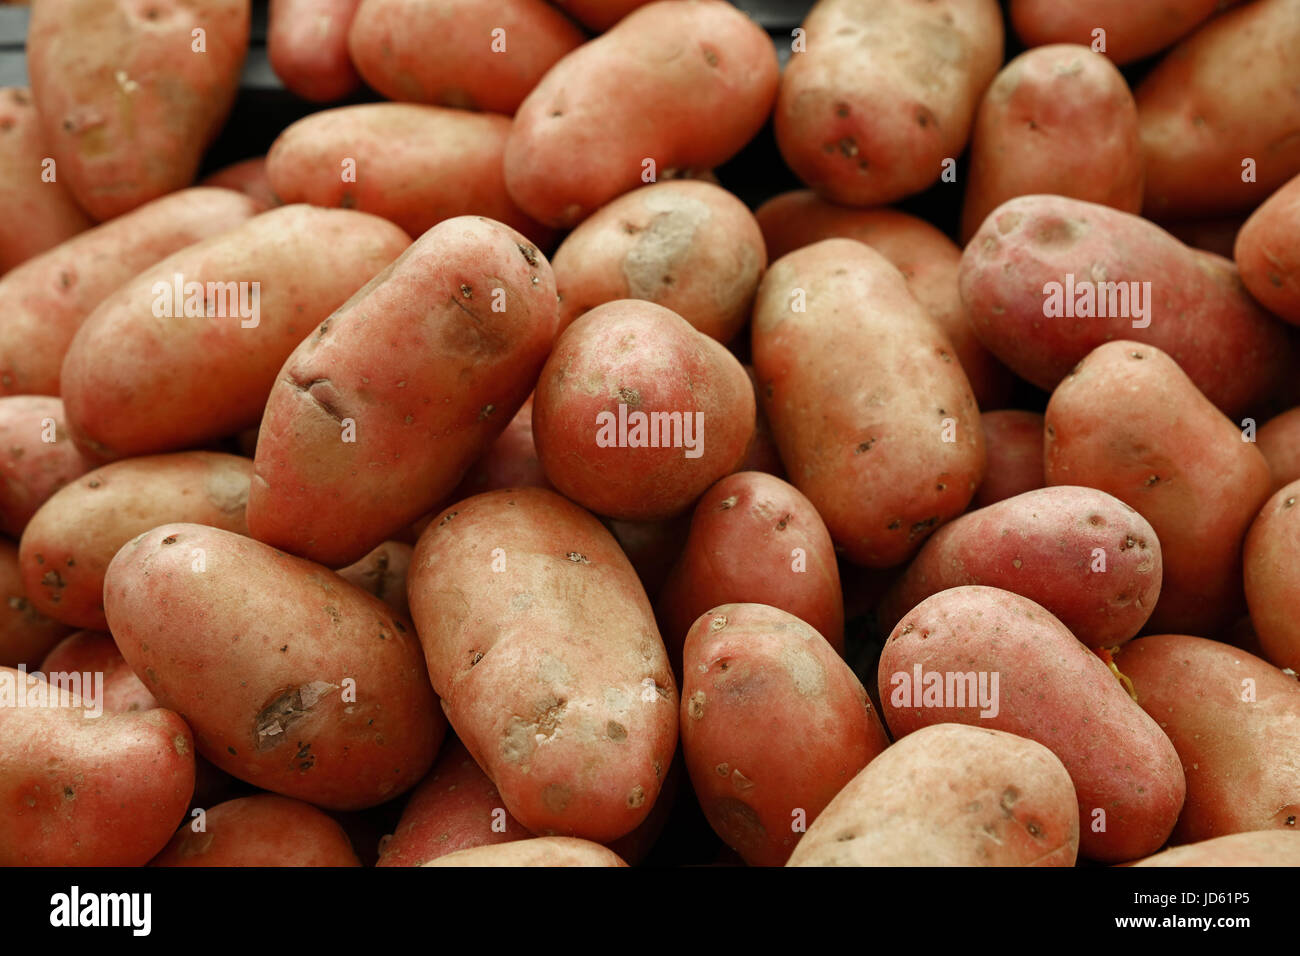 Heap of washed pink new farm potato at retail market display close up, high angle view - Stock Image